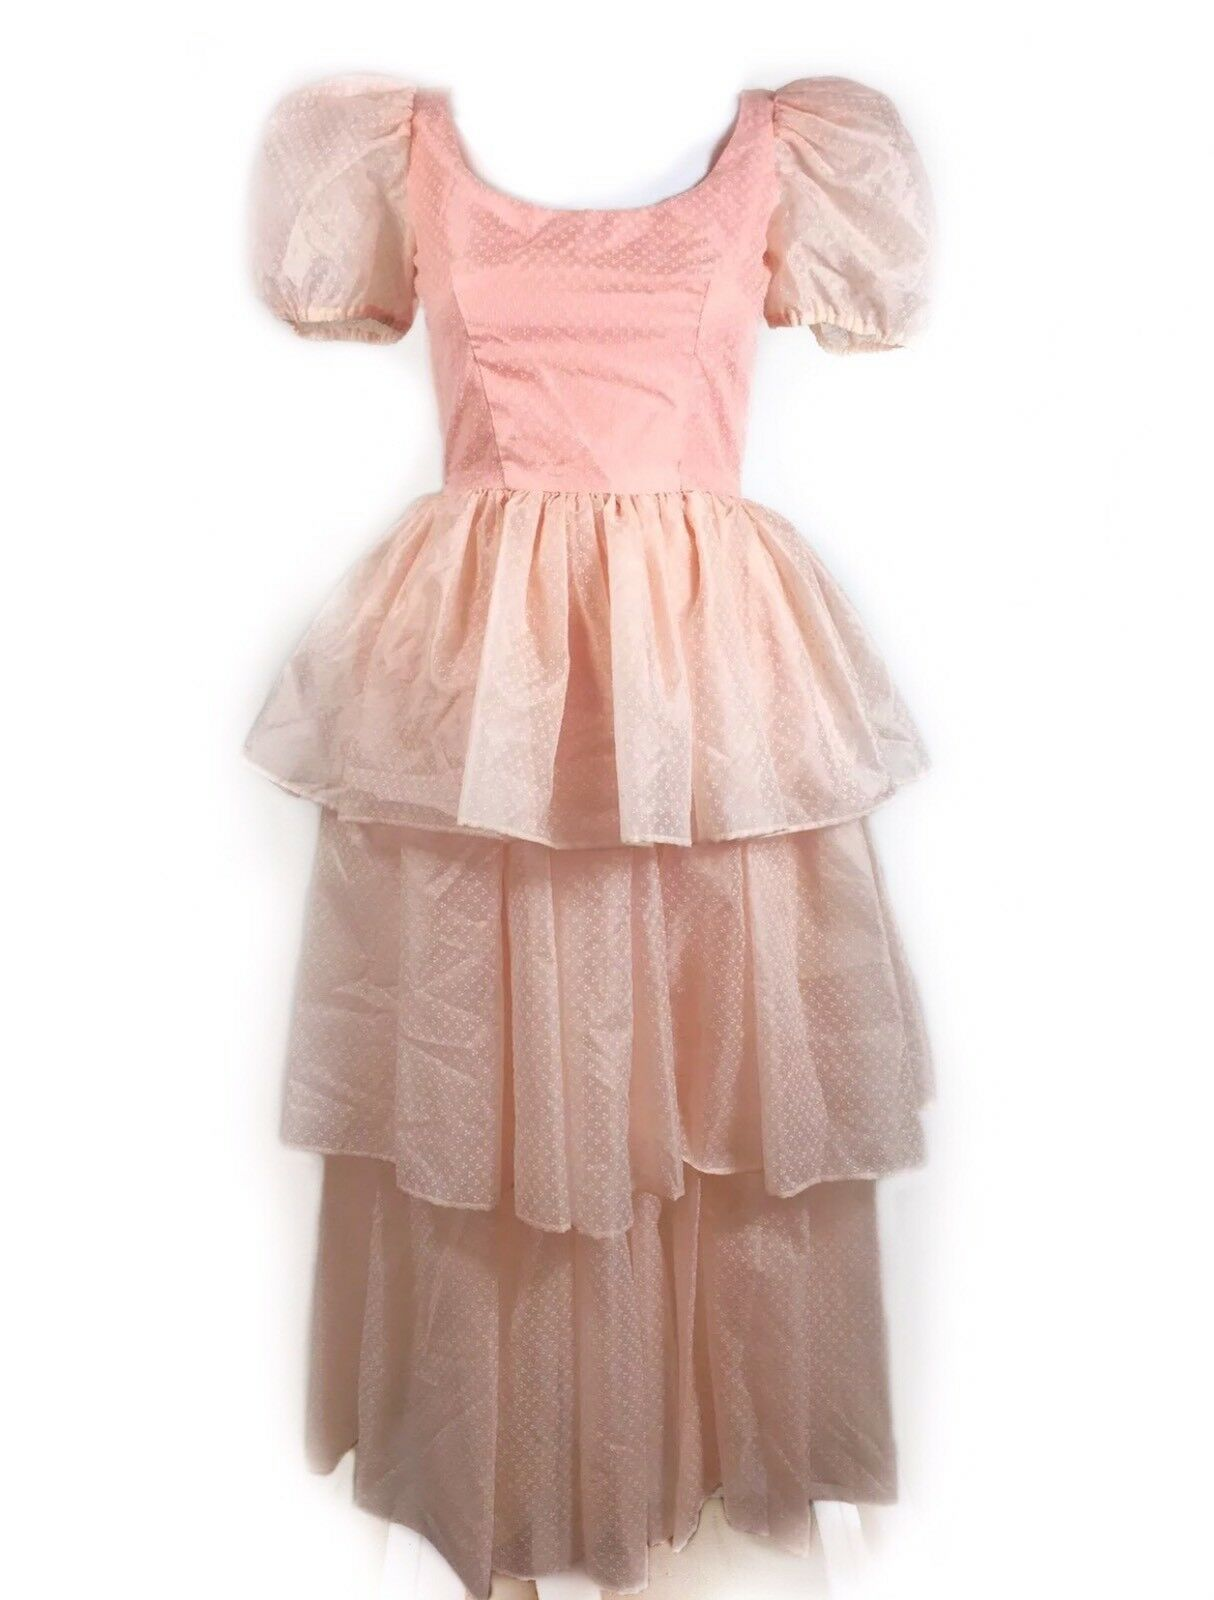 Vtg 40s 50s 3 Layered Pink Poofy Sleeve Prom Dress Ball Gown Girly ...